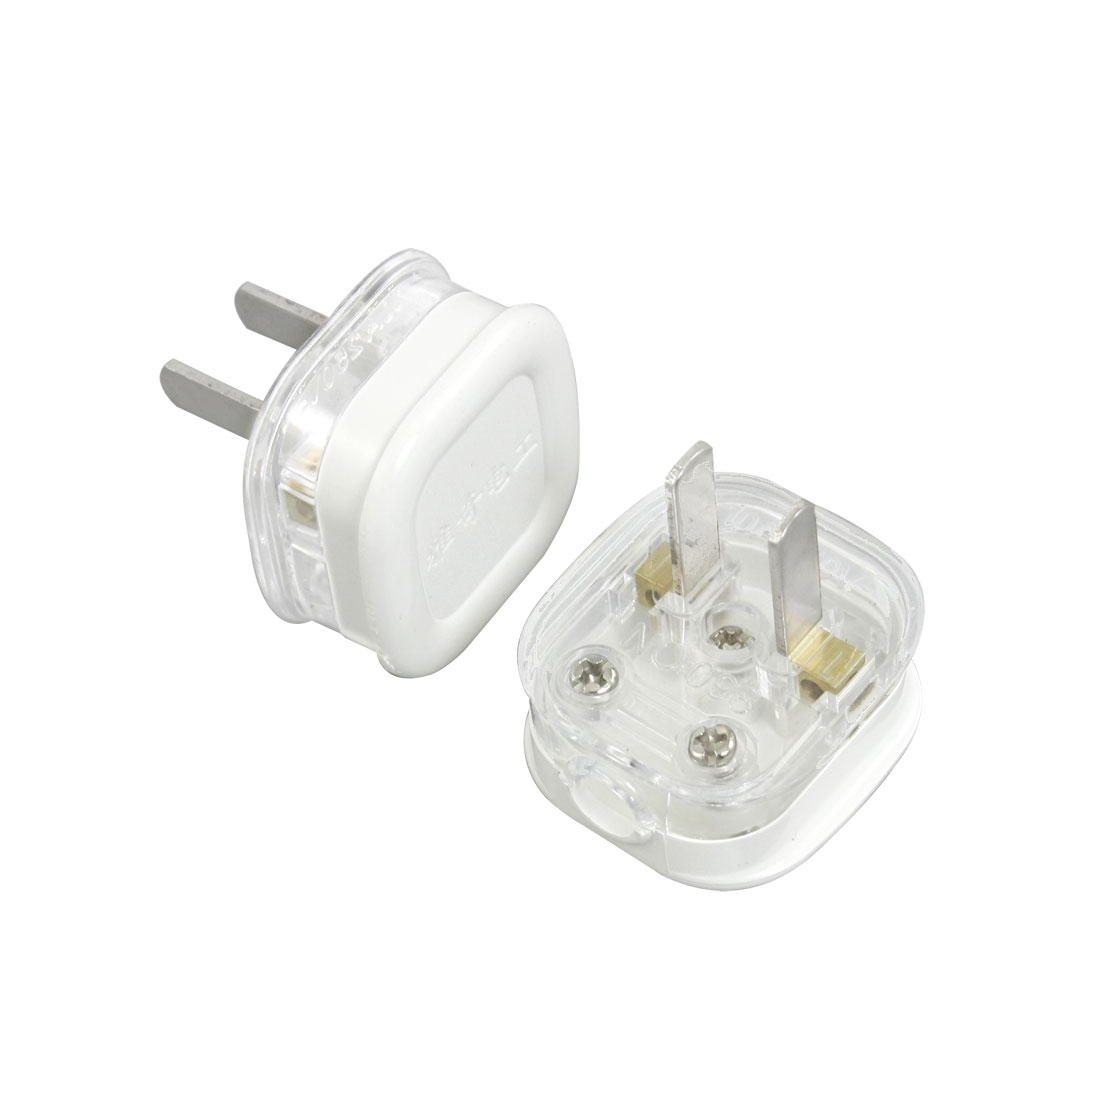 4 Pcs Home Cable 2 Flat Pin White Clear AC 250V 10A US Plug Connection